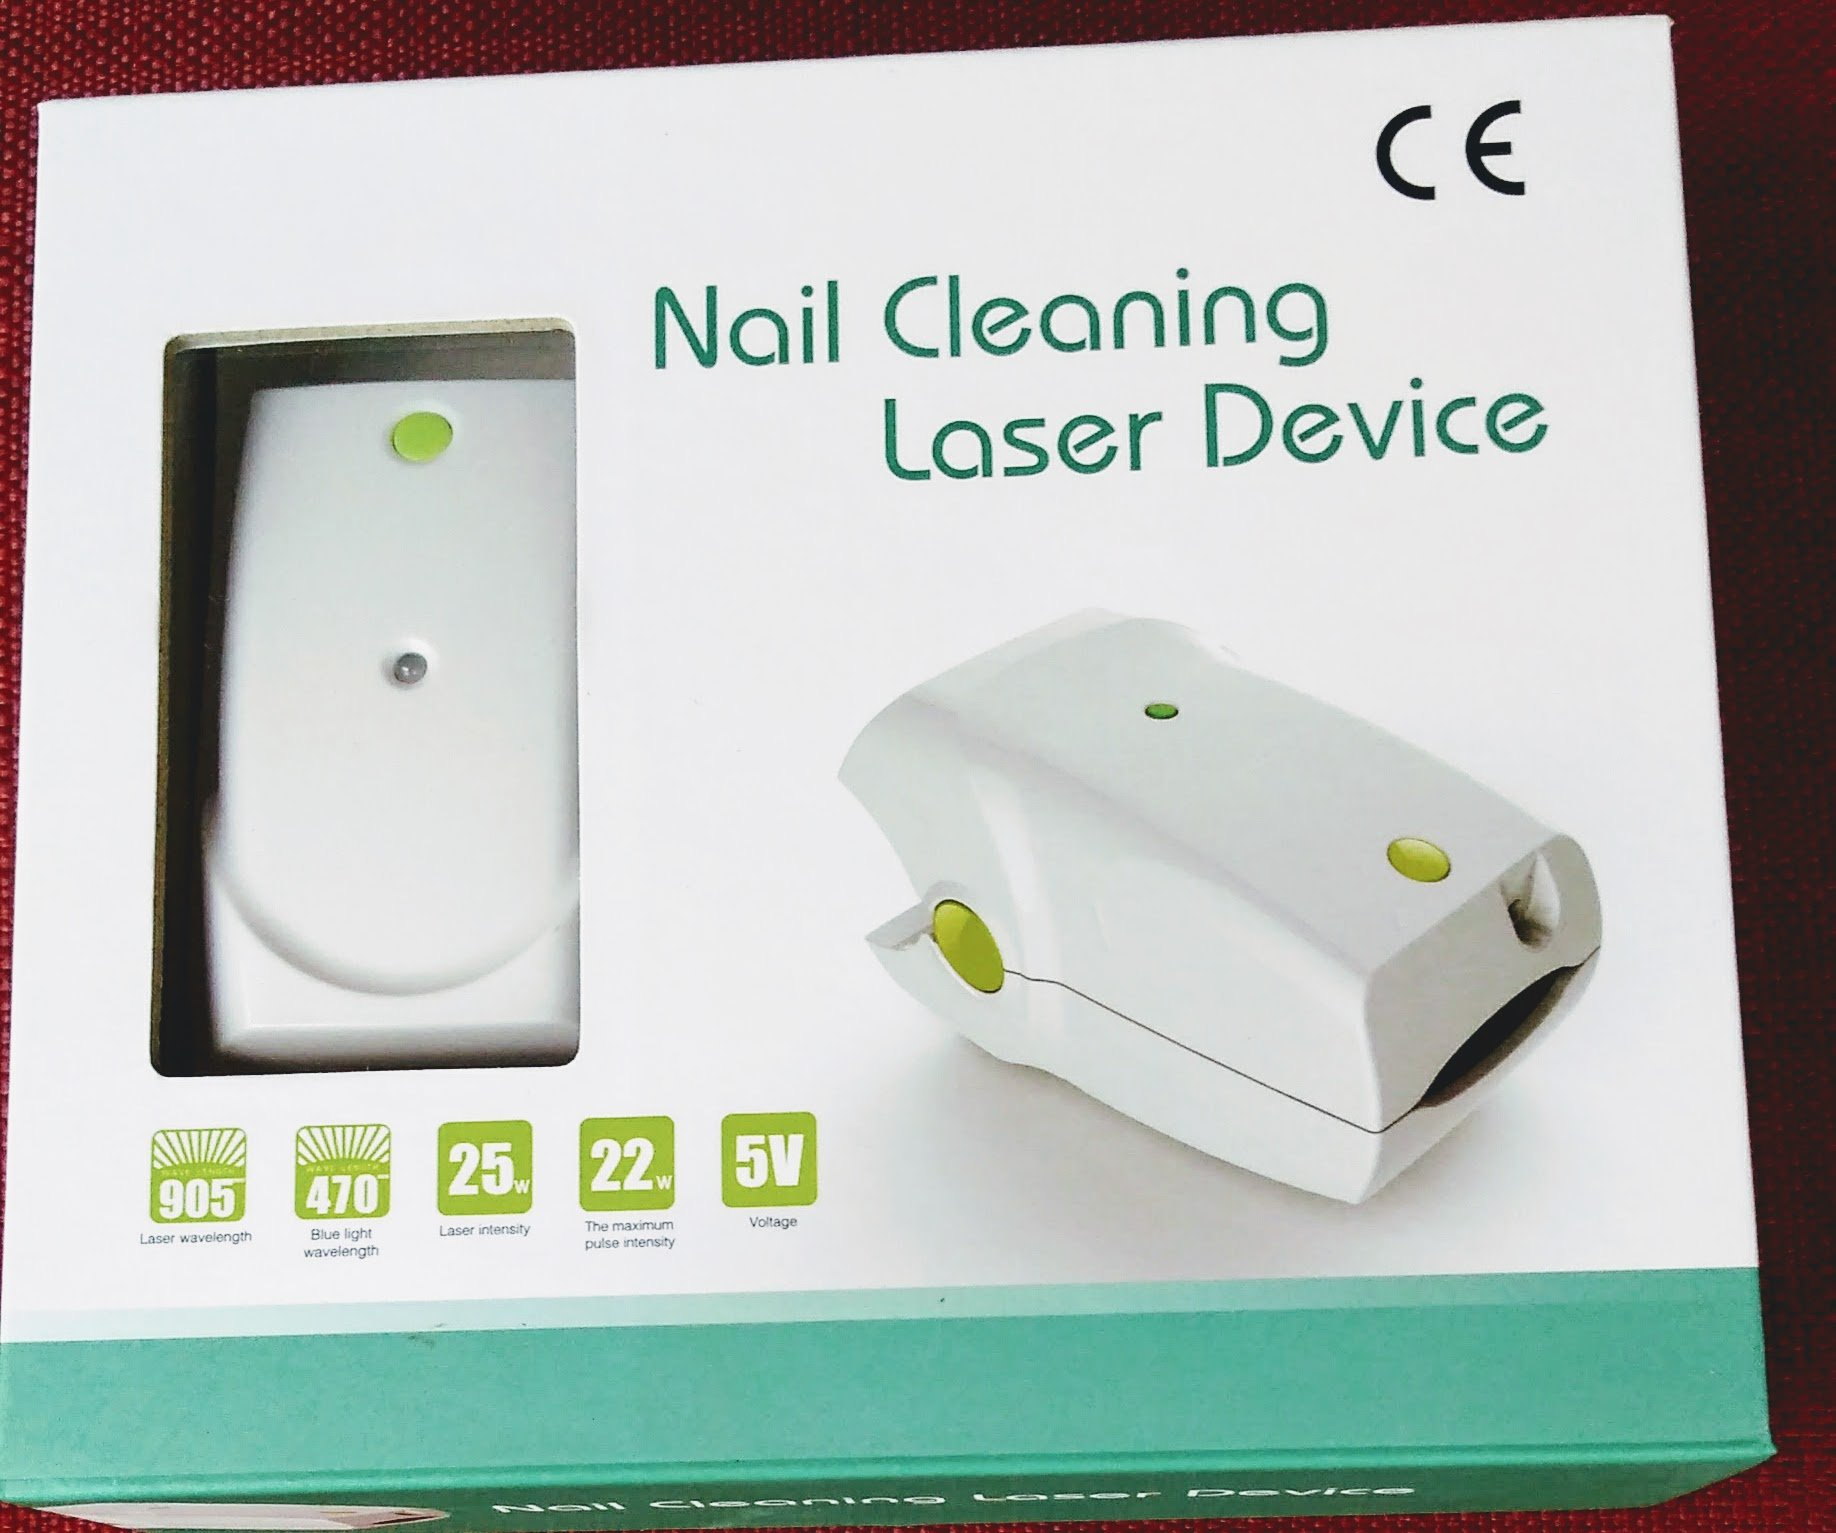 Nail Fungus Treatment Laser,Toenail Fungus Treatment Revolutionary And Safe Fungus Remover Treatment For Toe And Finger Nails To Use At-Home by Laser Nail Systems